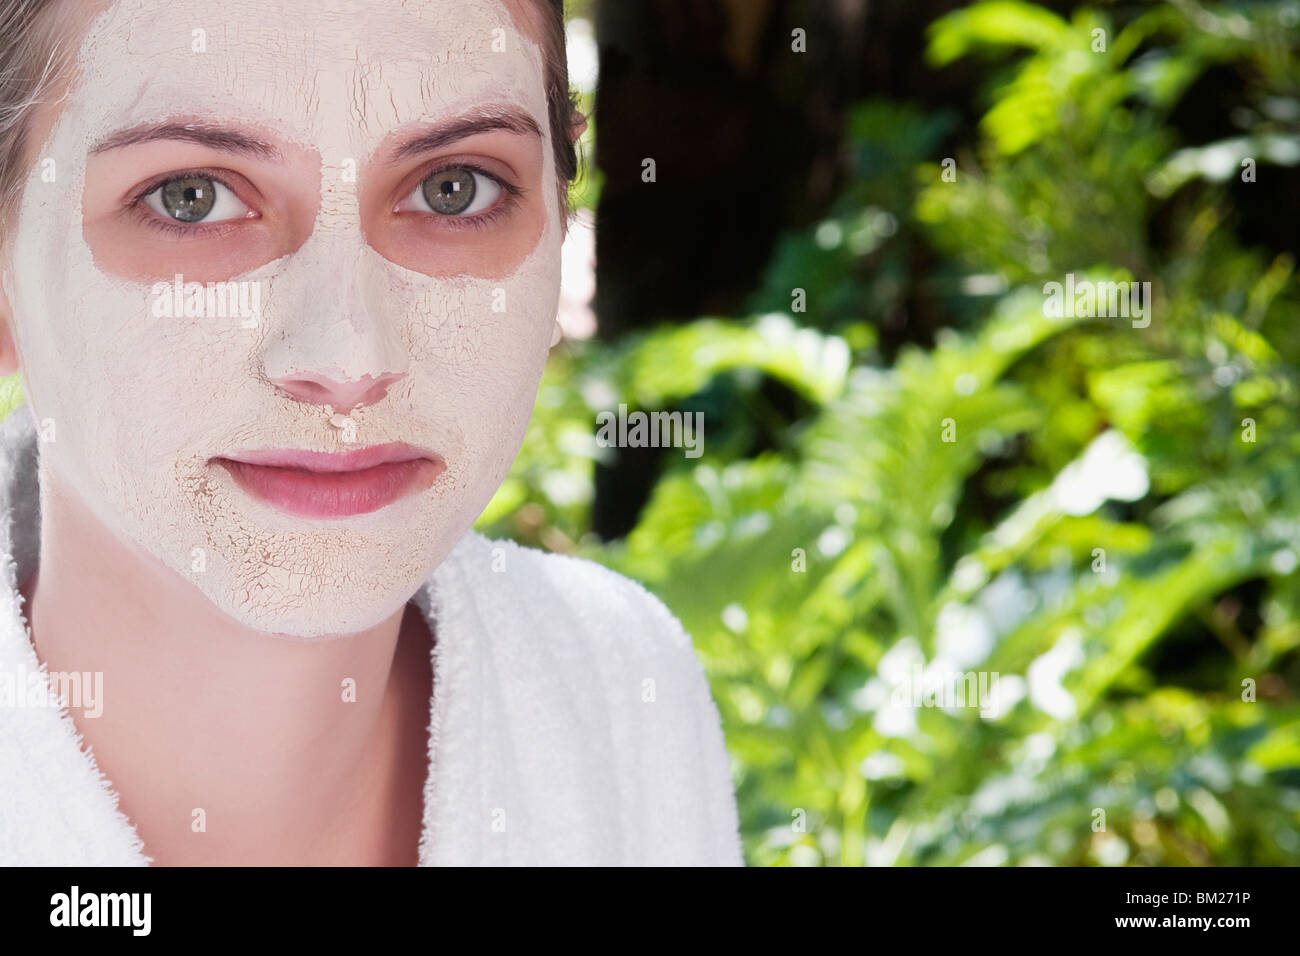 Woman with facial mask on her face - Stock Image